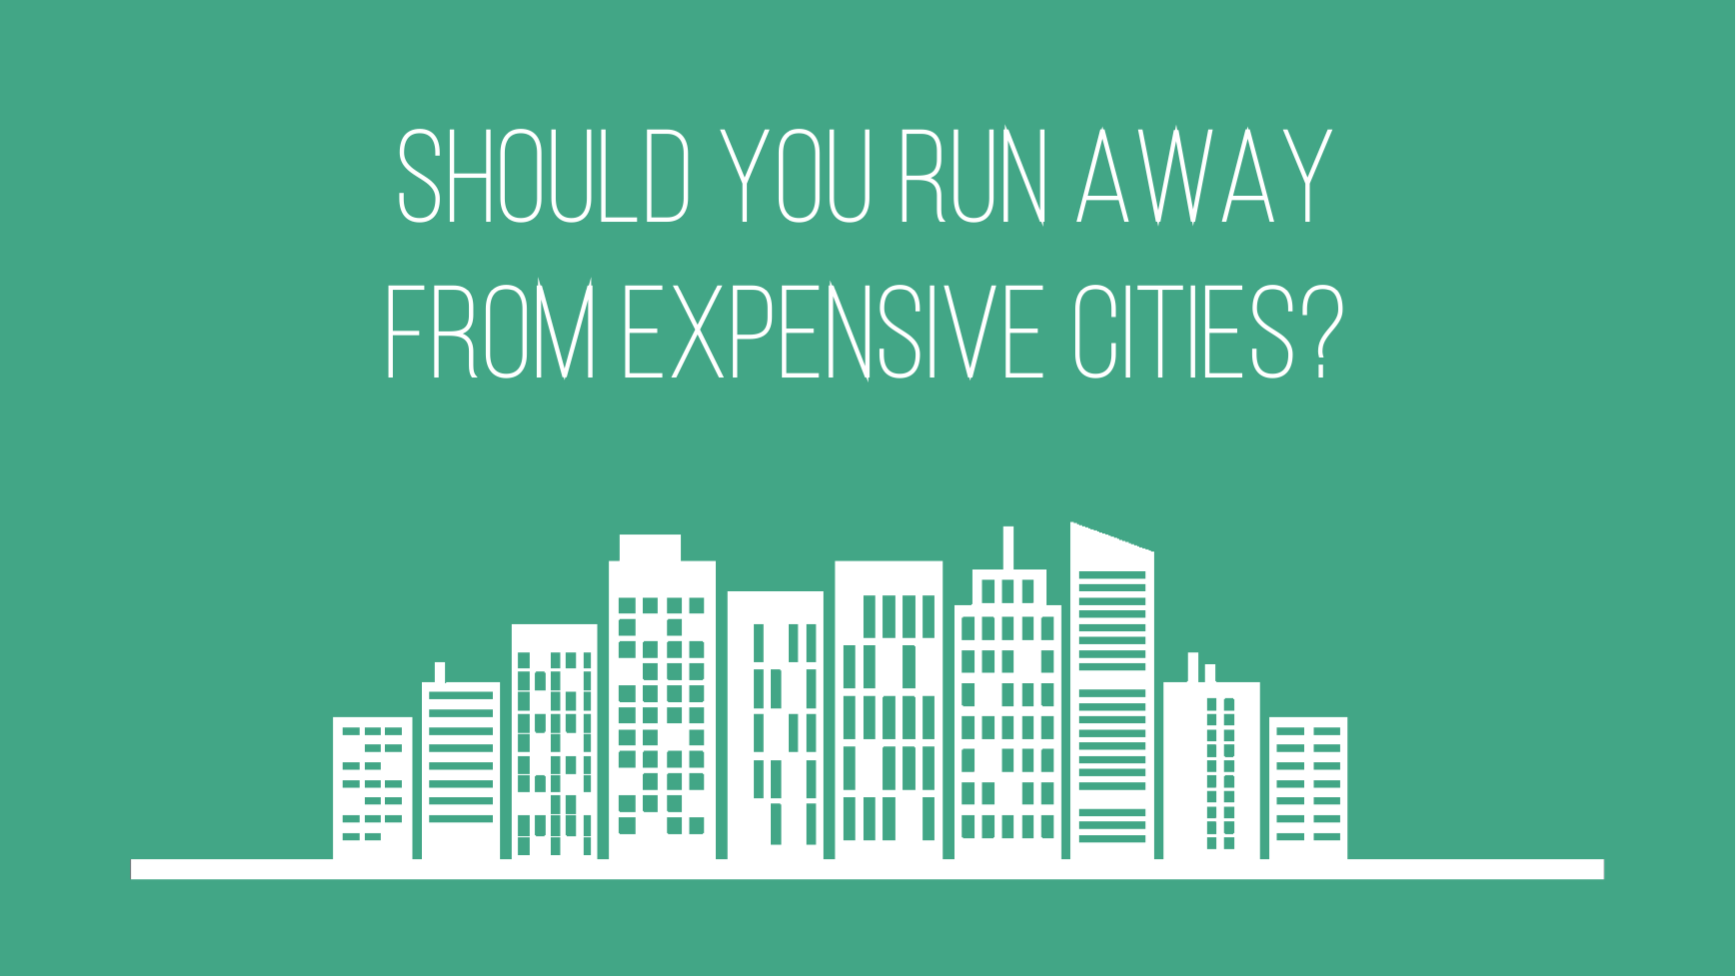 Should you run away from expensive cities?